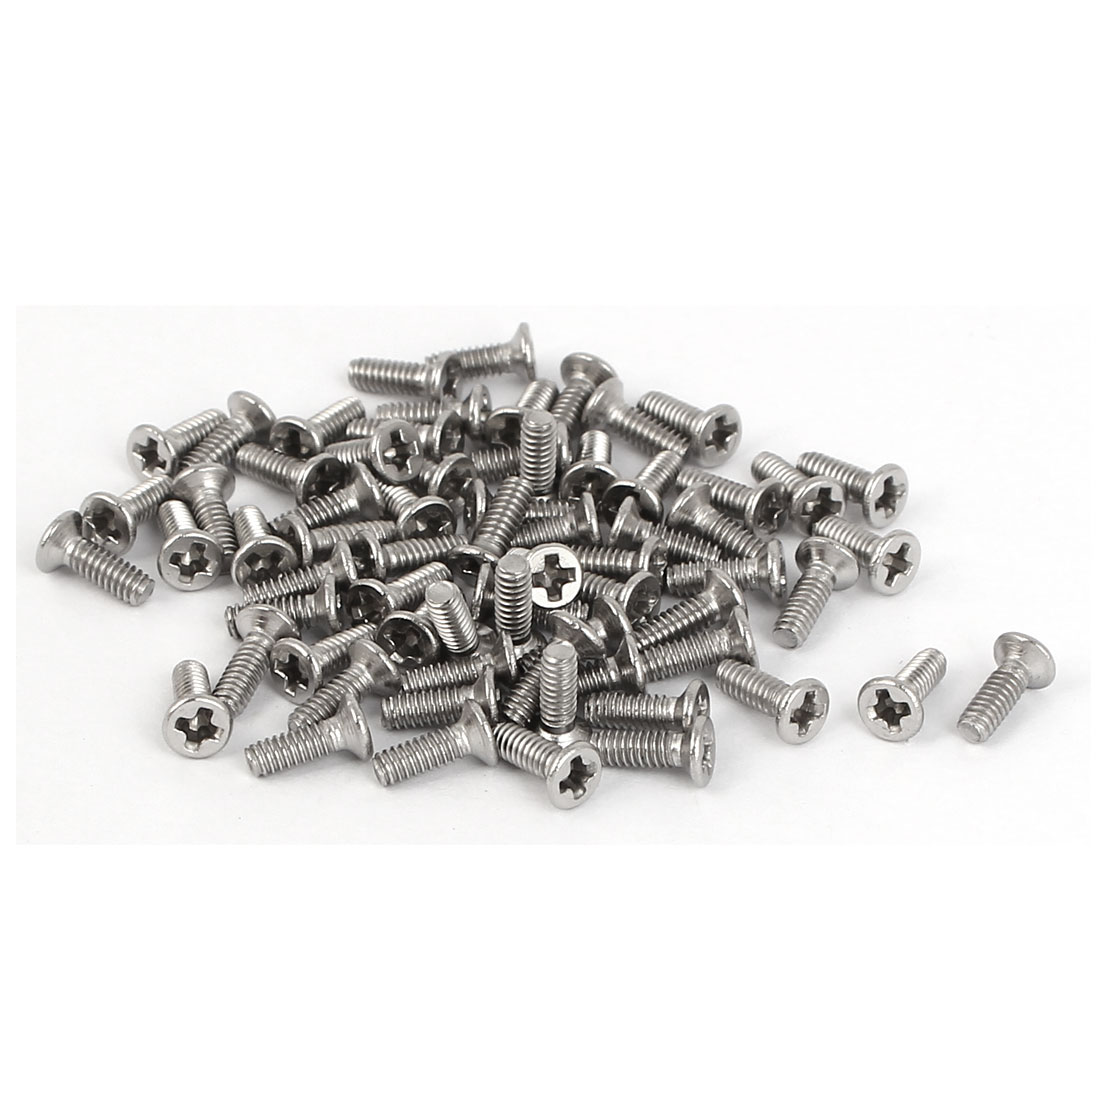 M2 x 6mm 316 Stainless Steel Phillips Drive Flat Head Screws Bolts 75 Pcs